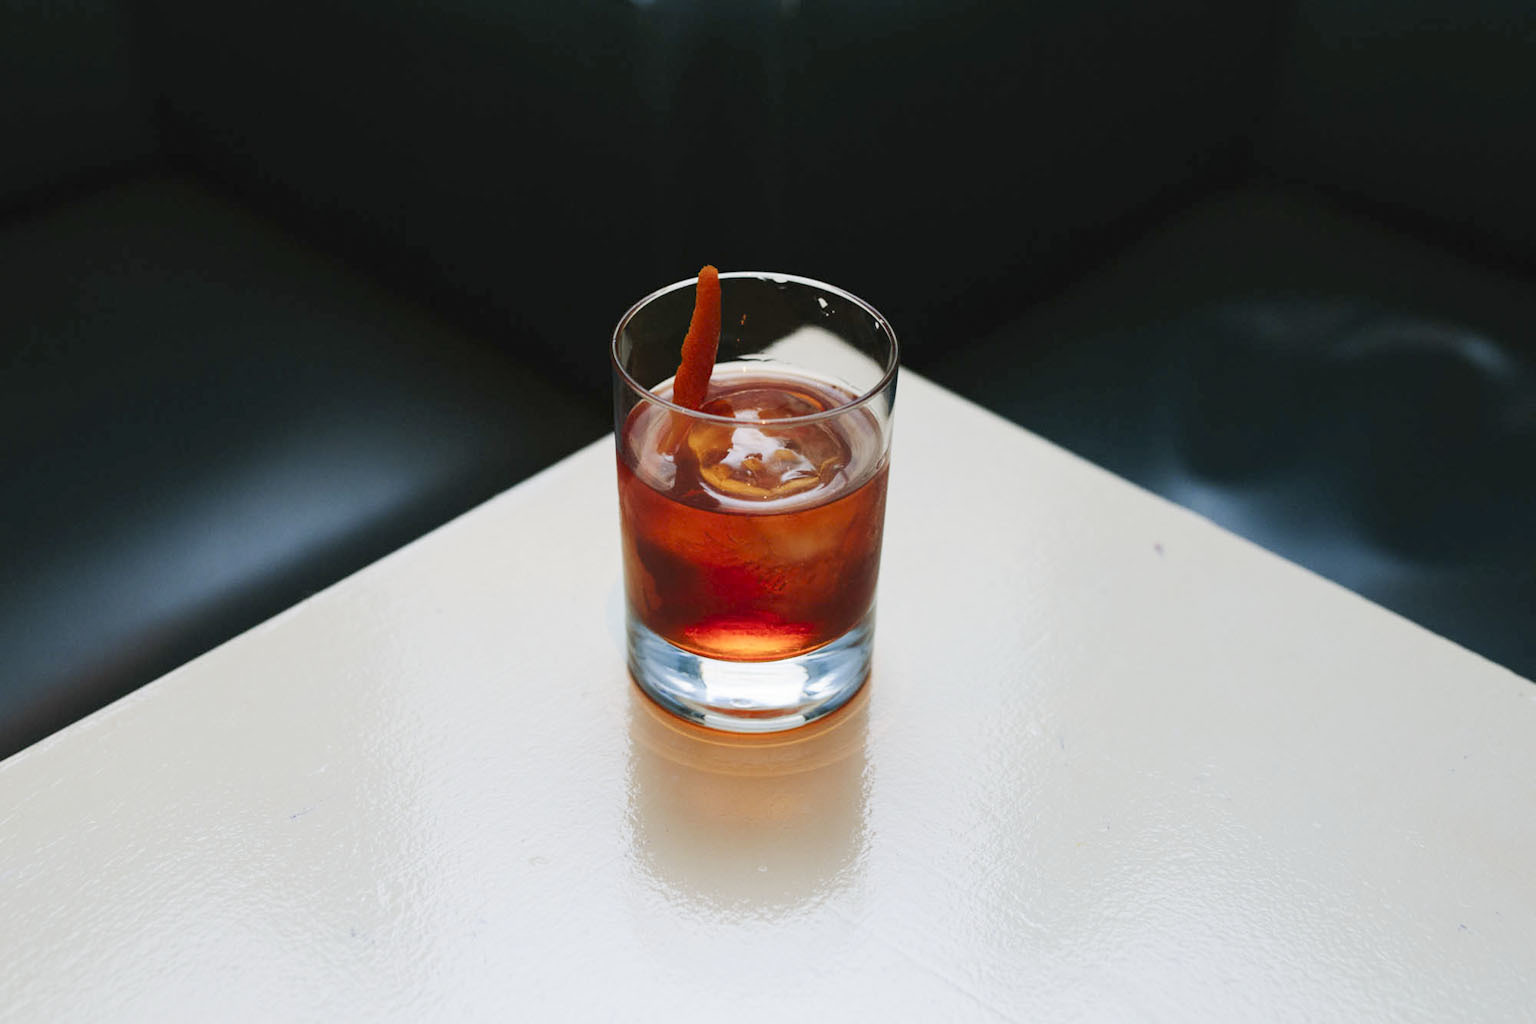 Old Fashioned at Violet Hour